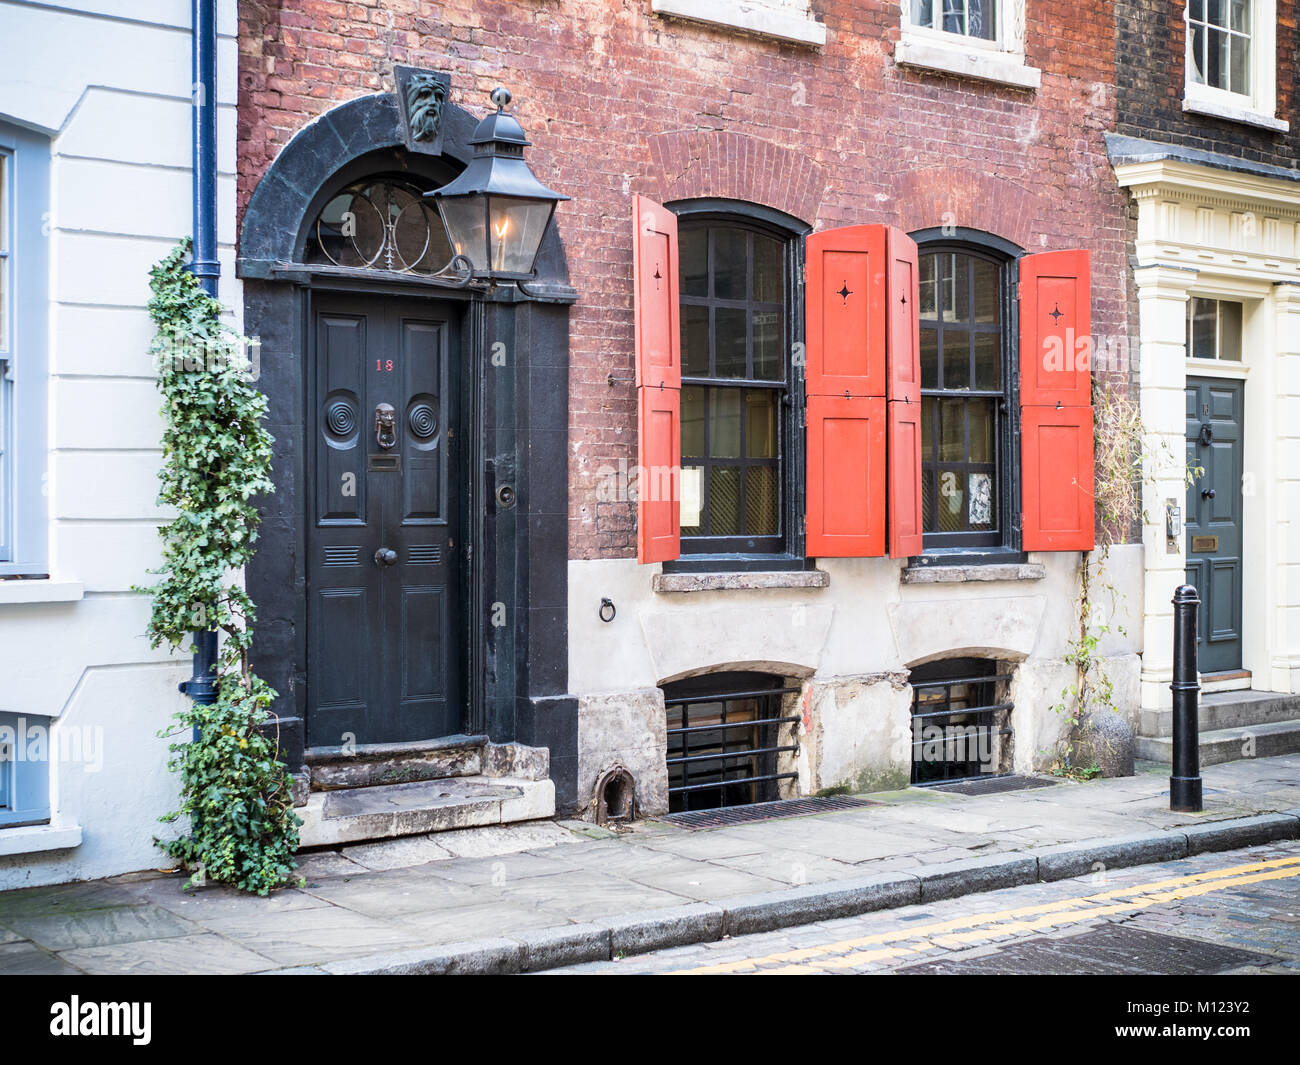 Dennis Severs House, a preserved Huguenot house at 18 Folgate Street in East London,  where families of silk weavers - Stock Image